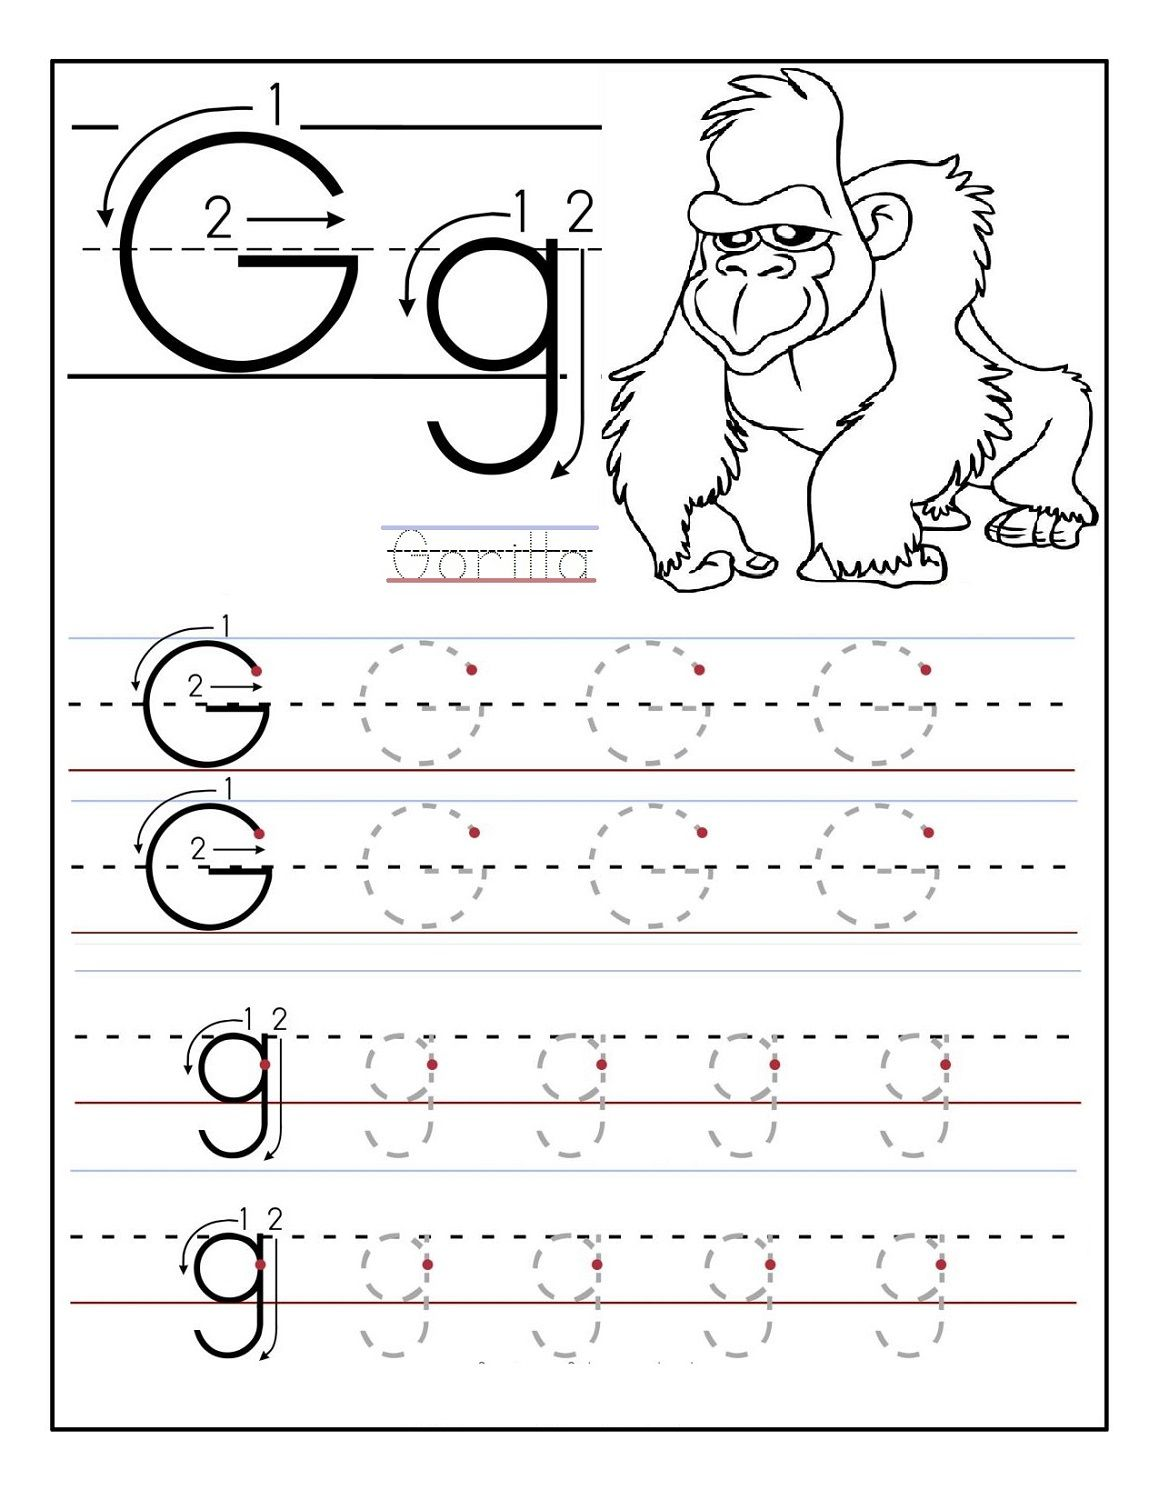 Free Traceable Alphabet Worksheets Gorilla With Images